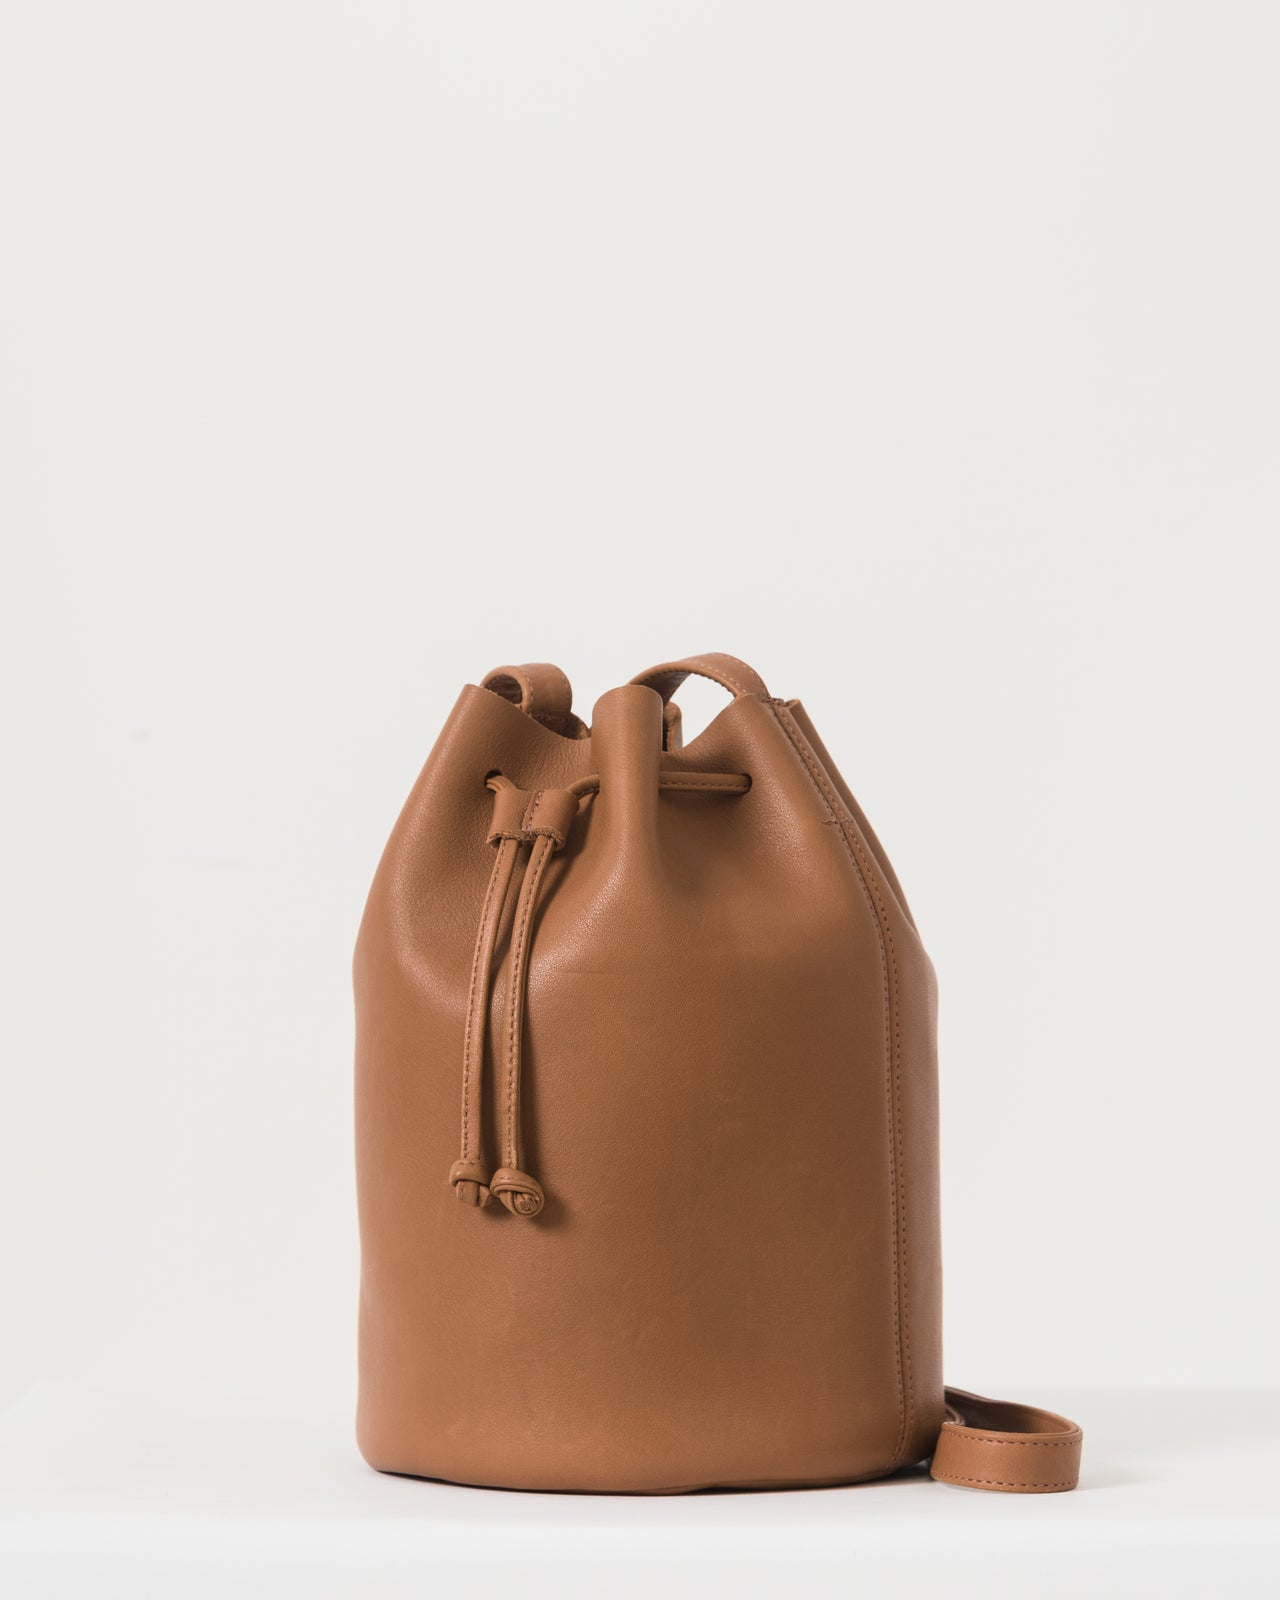 Drawstring Purse - Caramel -2018